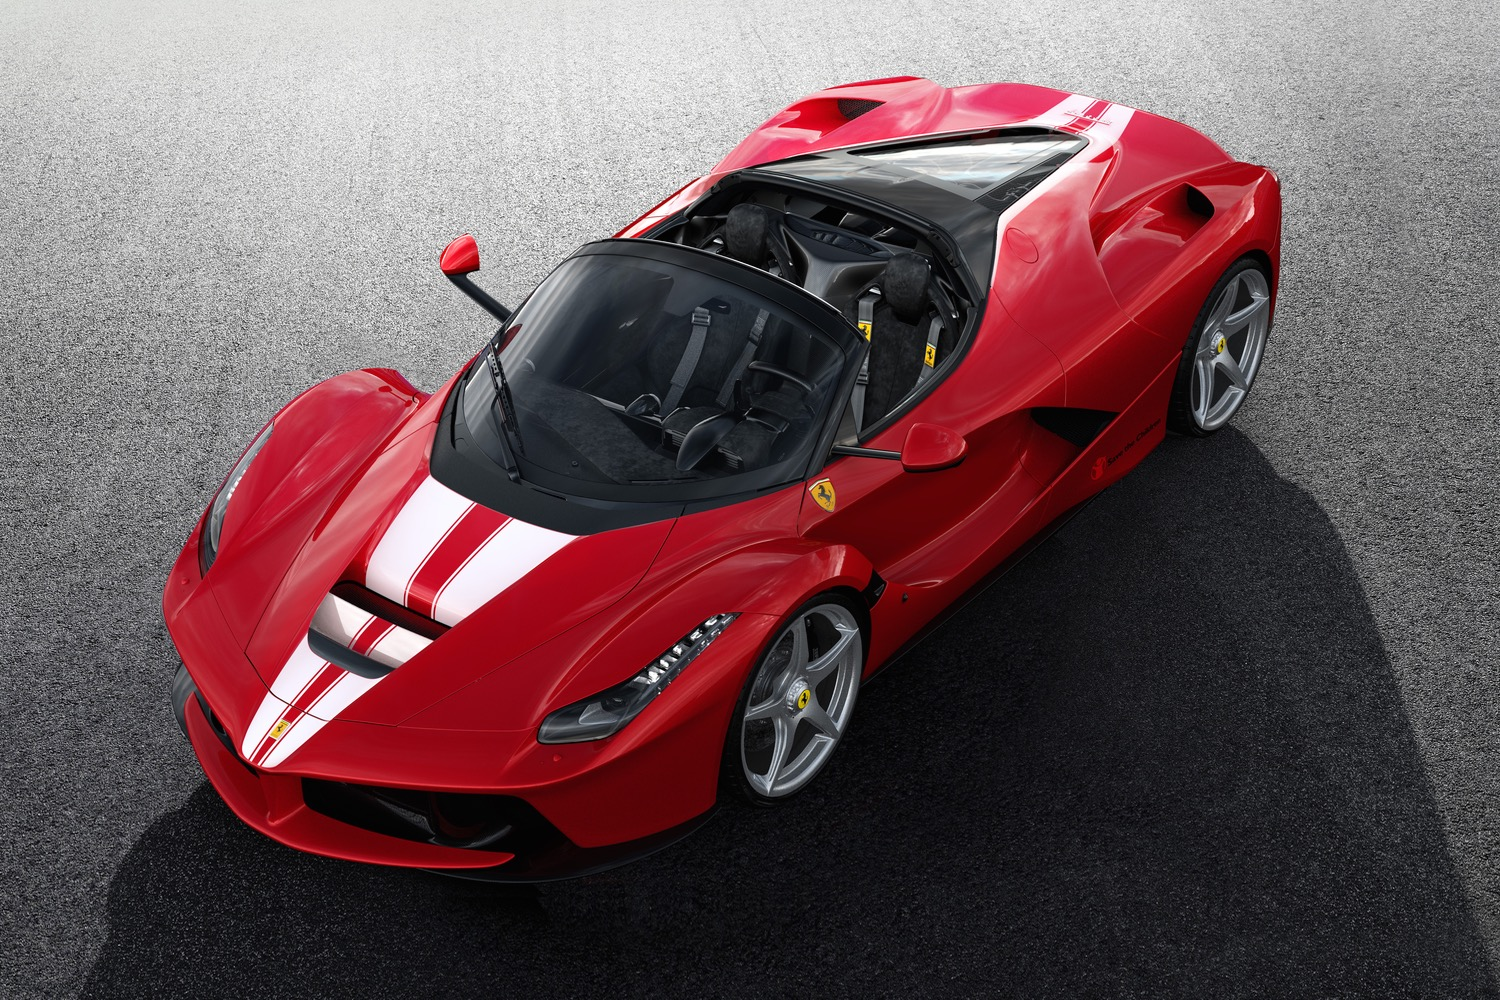 Final Ferrari Laferrari Hybrid Supercar Sells For Million At